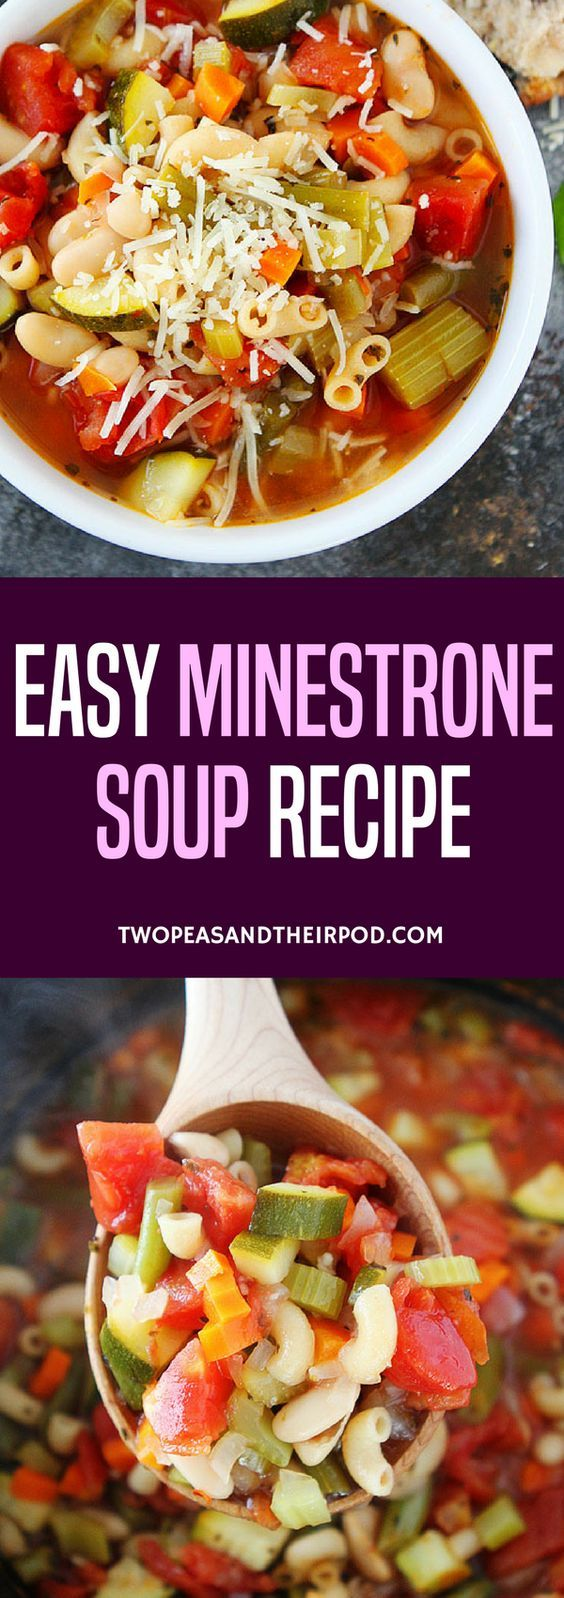 Easy Minestrone Soup-this classic Italian soup is a family favorite! Enjoy it for lunch or dinner!  ~ Two Peas and Their Pod